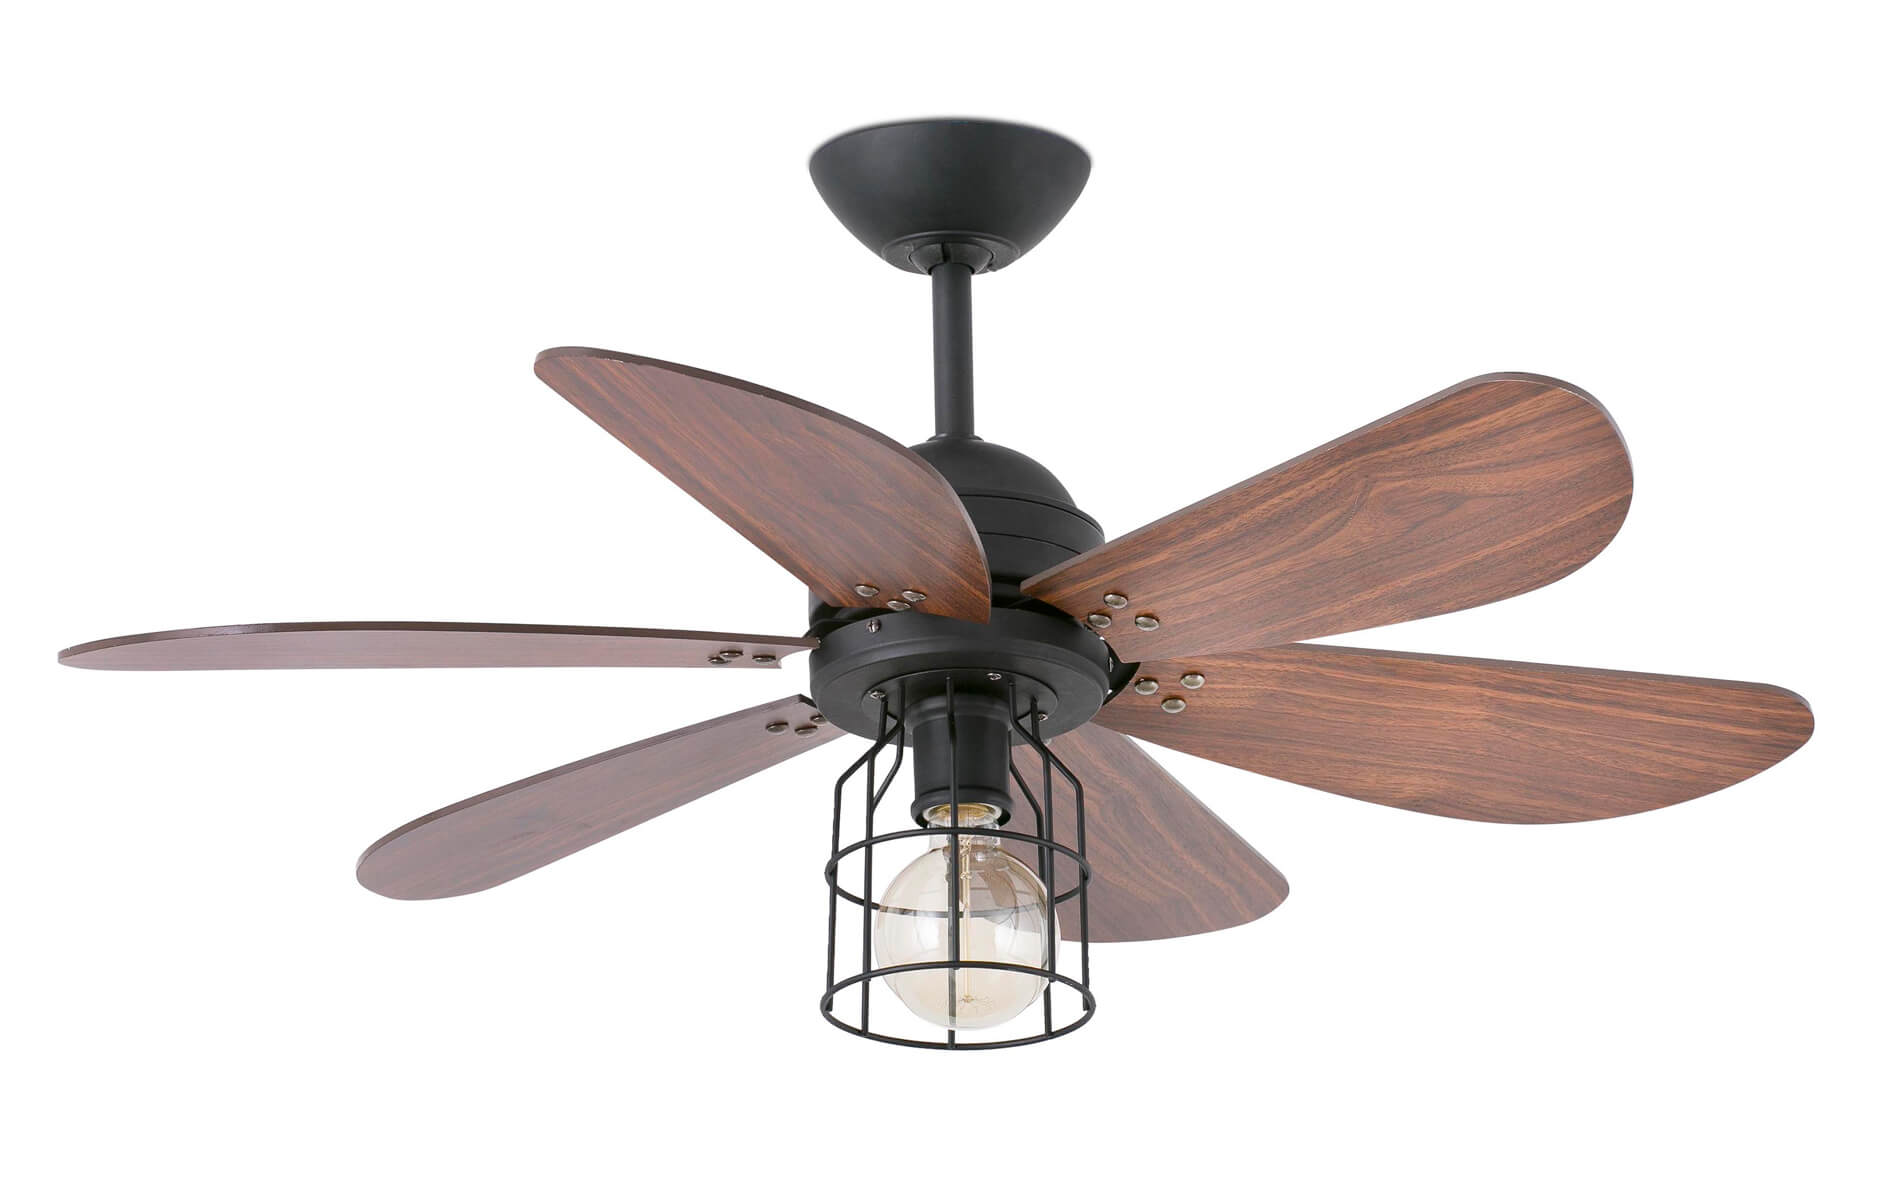 More information of Faro CHICAGO ceiling fan.